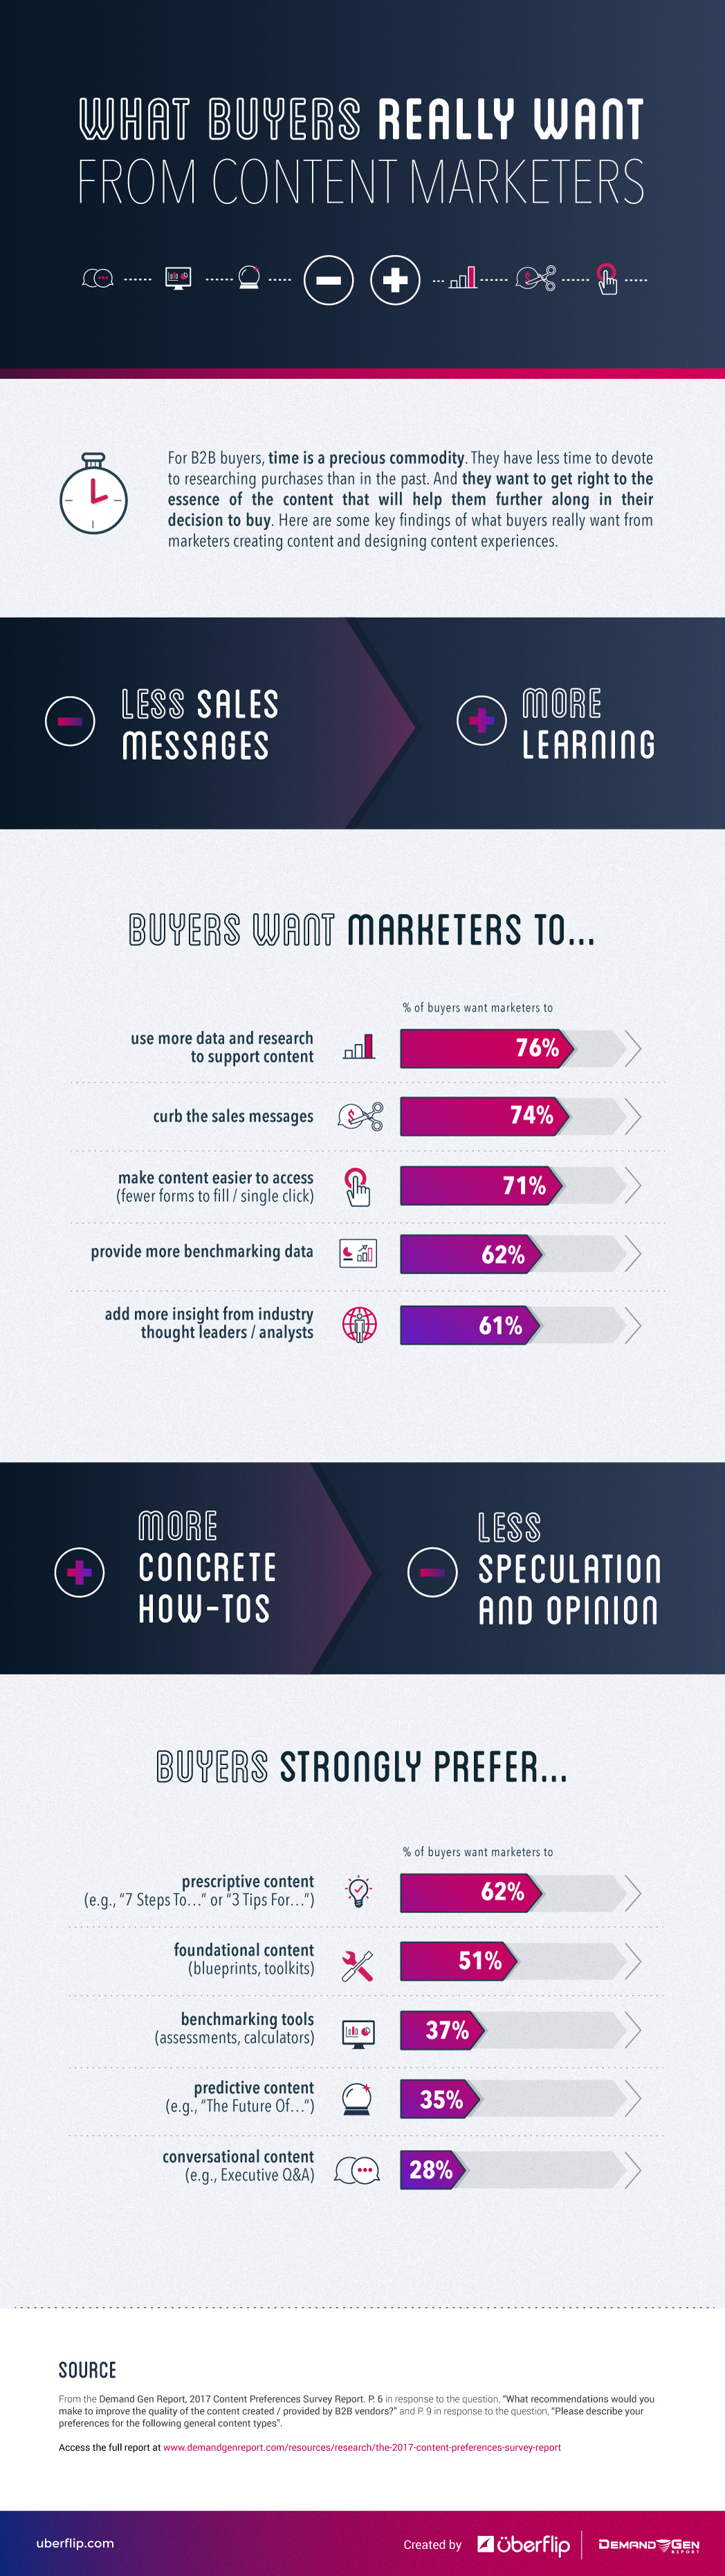 What Is Expected Out Of Content Marketers - Infographic